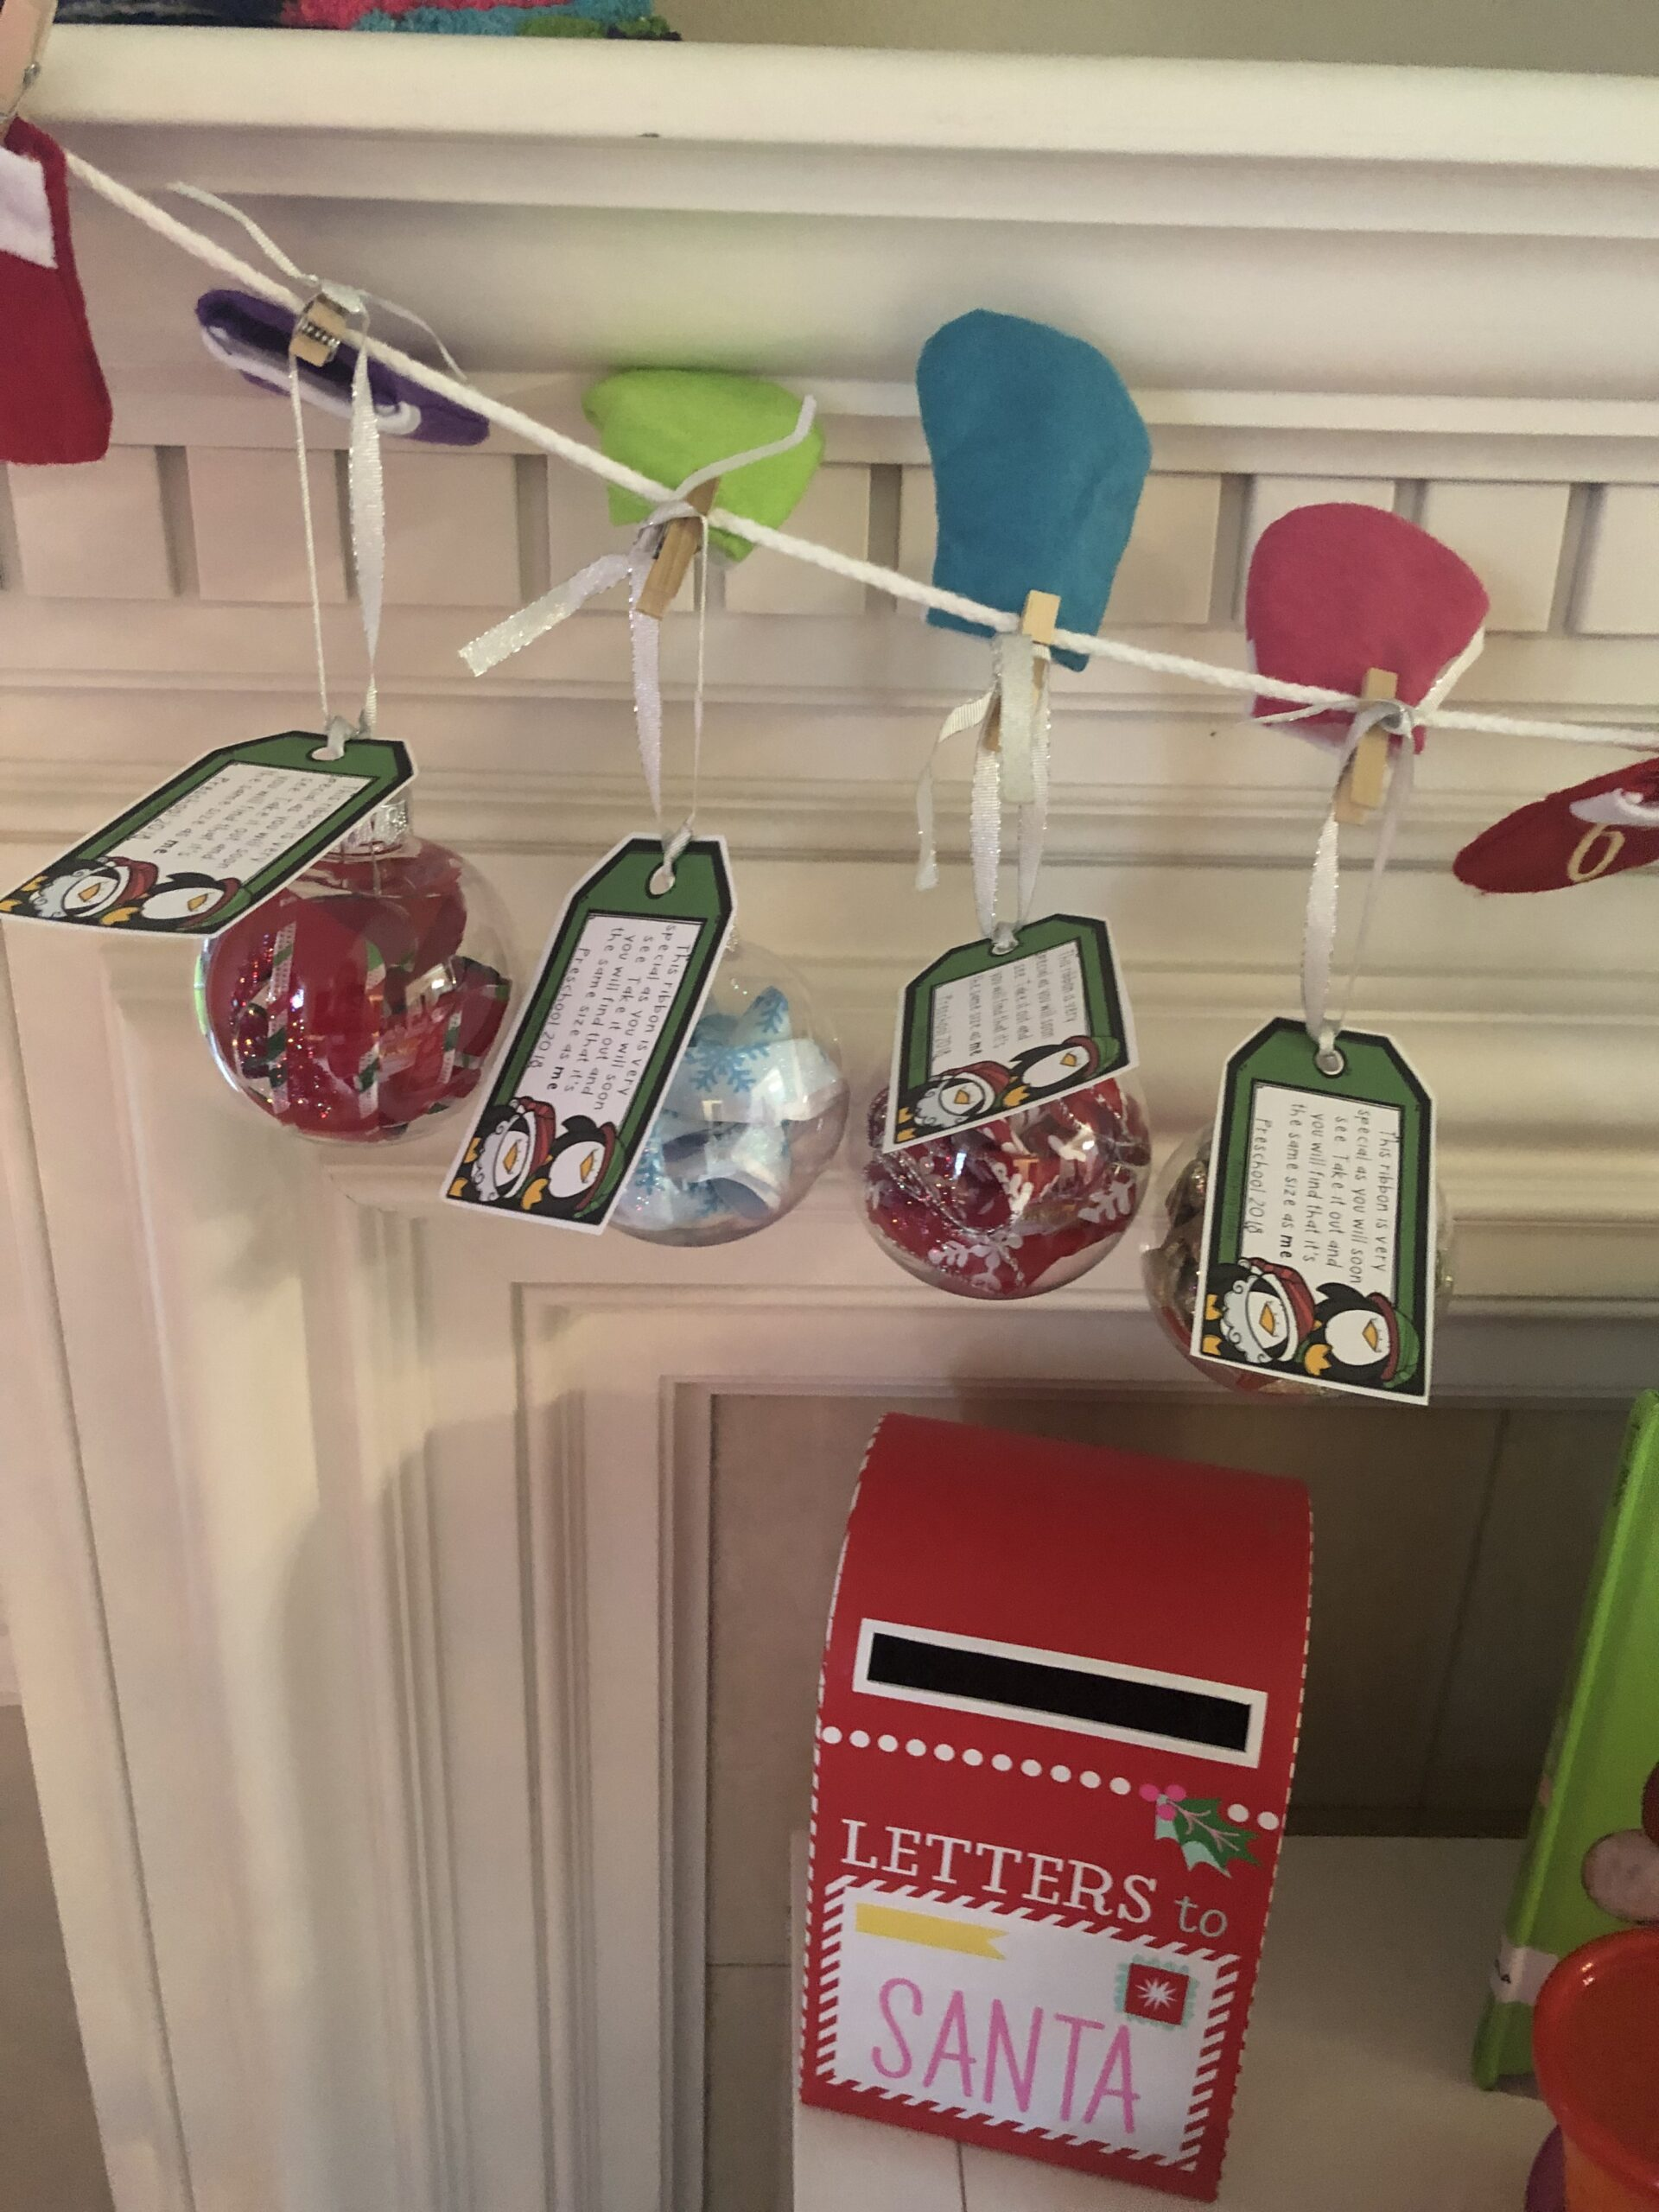 Want to make a sweet gift for Grandparents or as a school gift for families? Check out how to make these simple DIY ornaments!